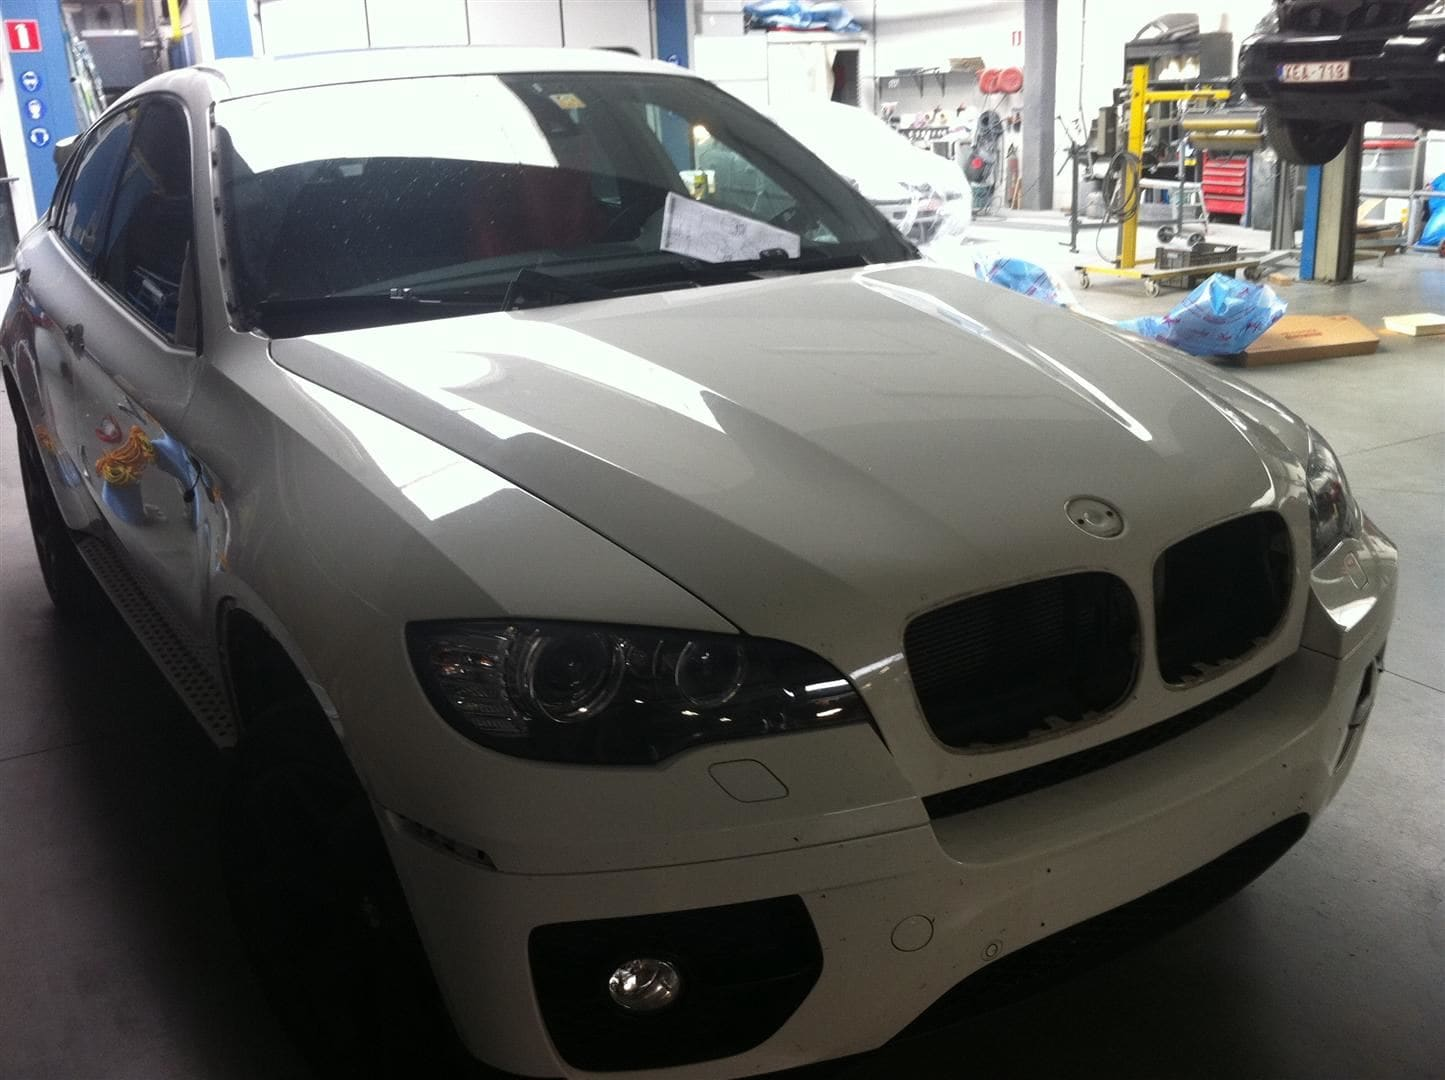 BMW X6 met Mat Rode Wrap, Carwrapping door Wrapmyride.nu Foto-nr:5451, ©2020